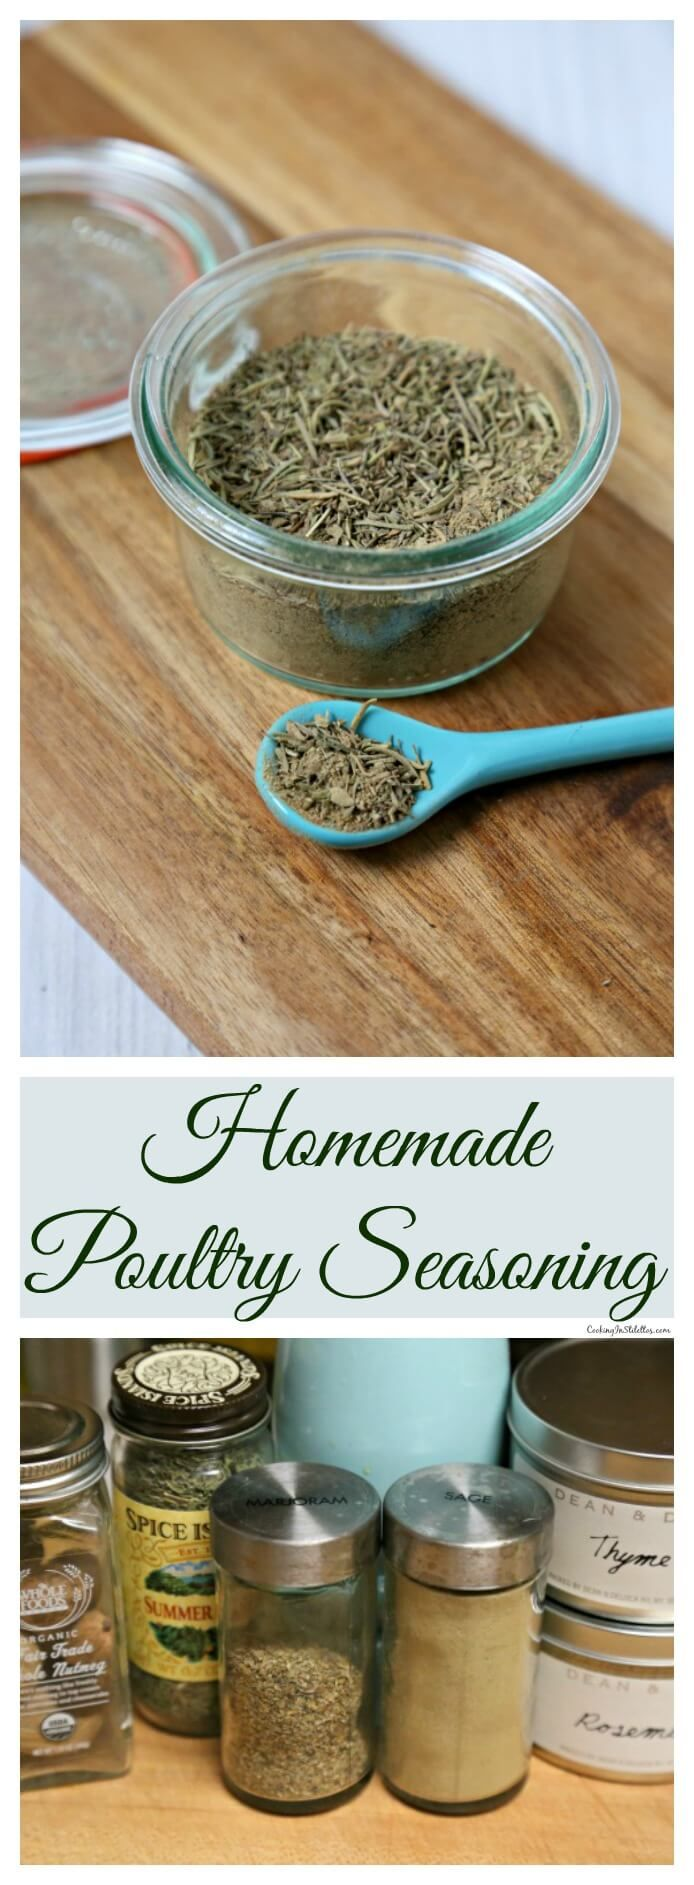 This Homemade Poultry Seasoning from CookingInStilettos.com is so easy to whip up from spices you probably already have on hand in your pantry. This is a must this holiday season! ~ http://cookinginstilettos.com